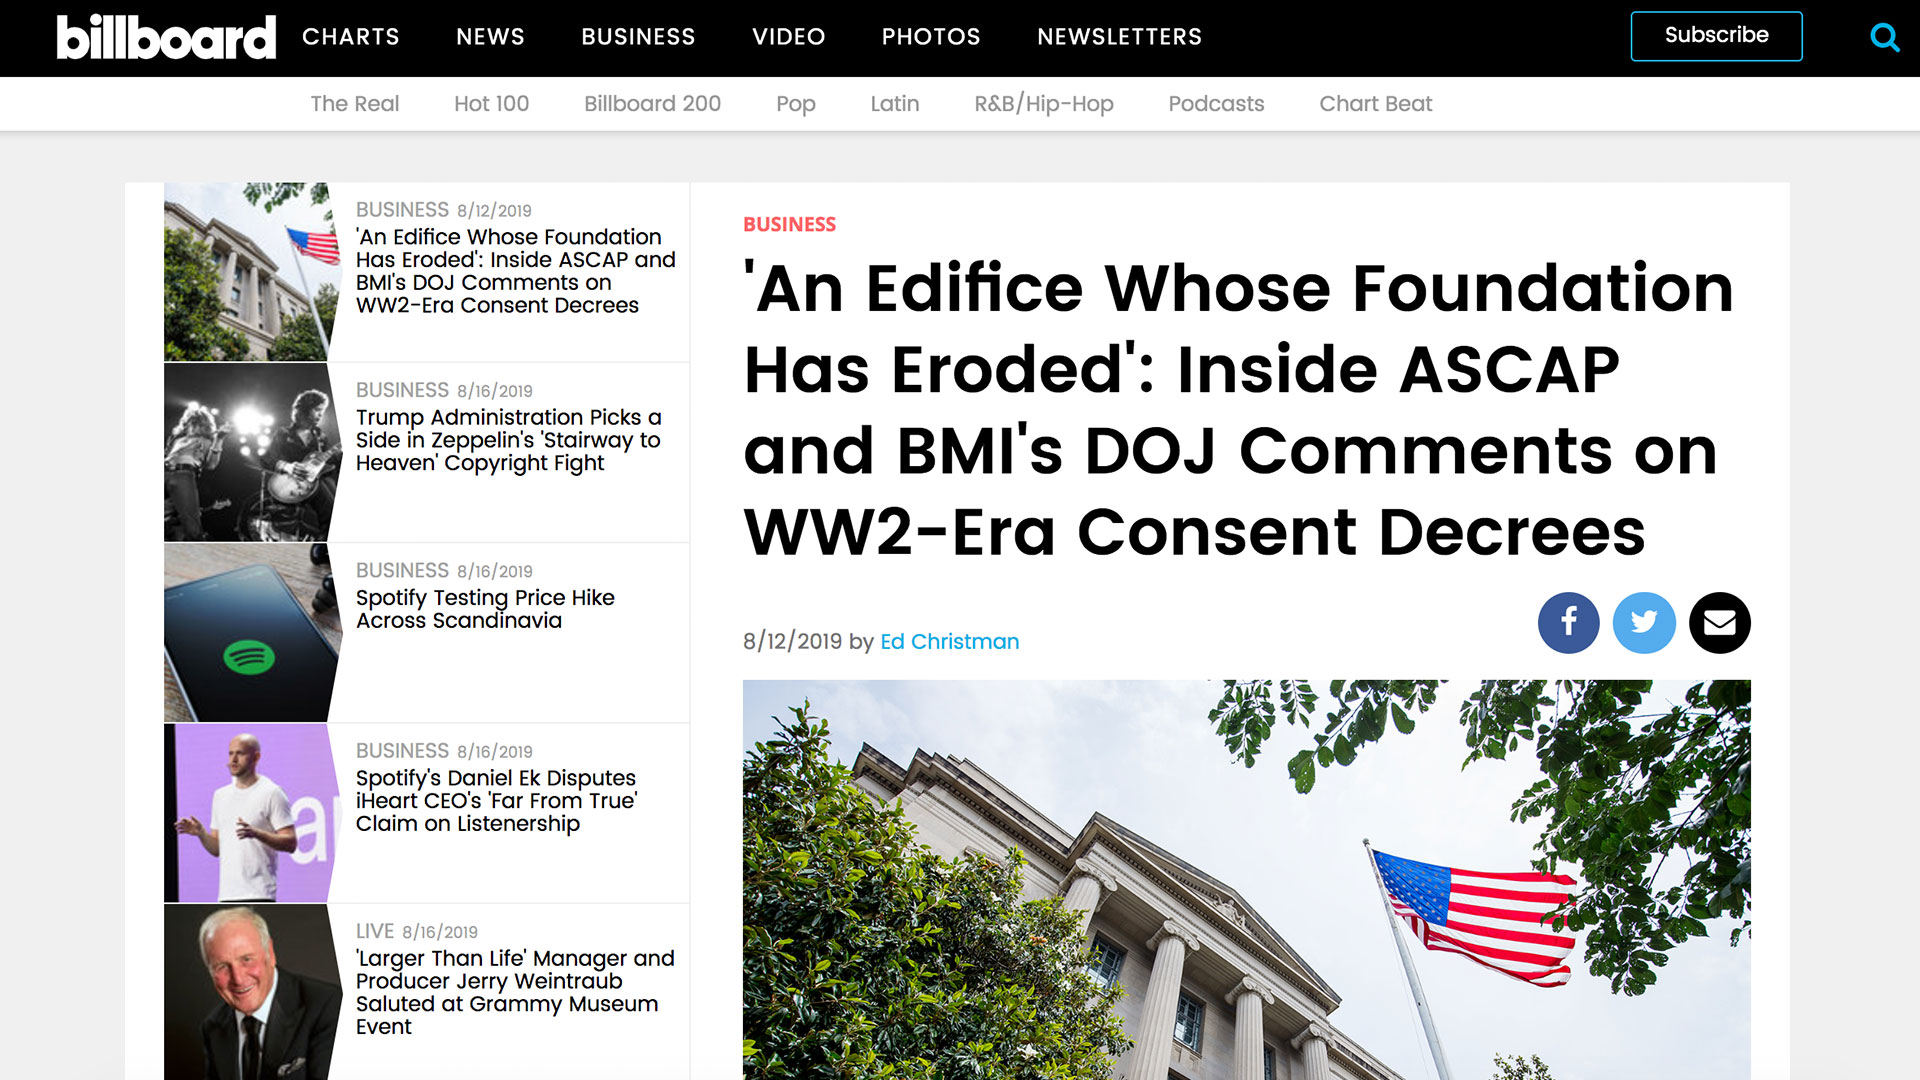 Fairness Rocks News 'An Edifice Whose Foundation Has Eroded': Inside ASCAP and BMI's DOJ Comments on WW2-Era Consent Decrees